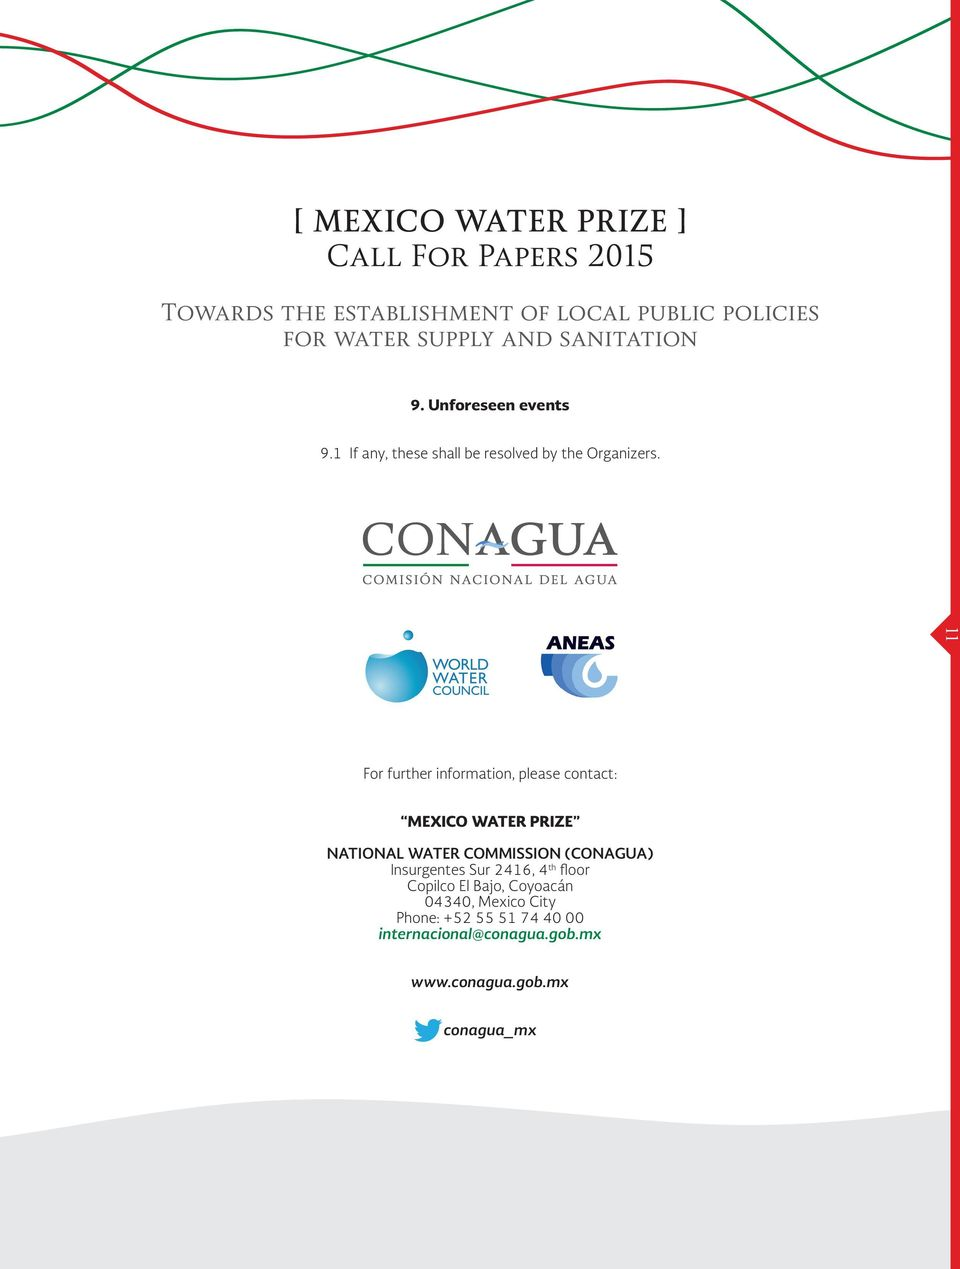 11 For further information, please contact: MEXICO WATER PRIZE NATIONAL WATER COMMISSION